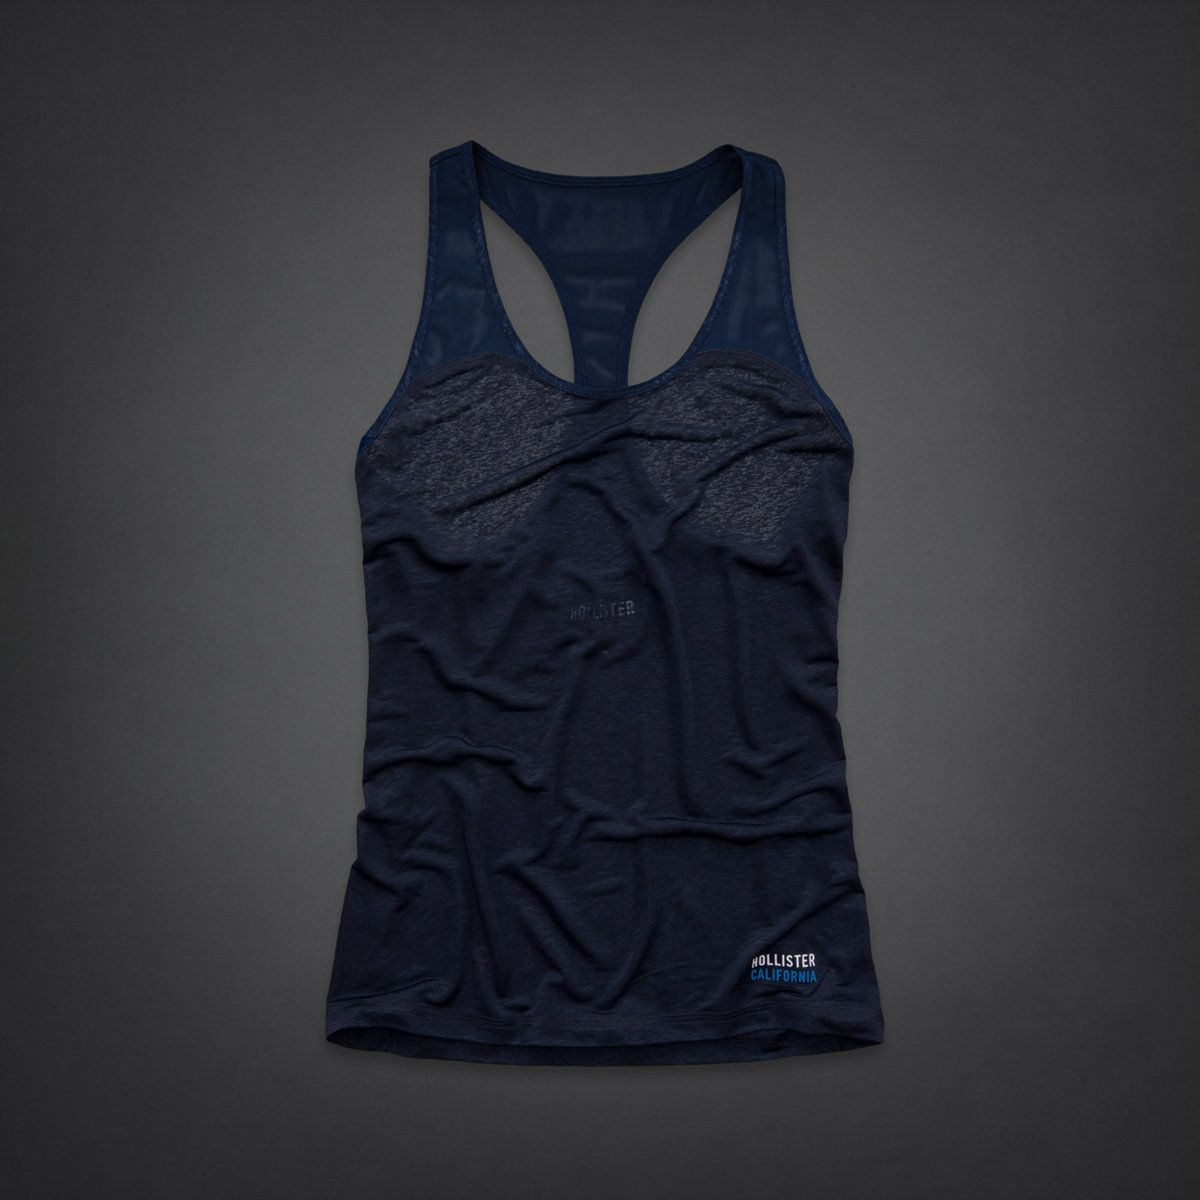 Hollister Sport Full-Zip | Cute Clothes 2 | Pinterest | Hollister ...